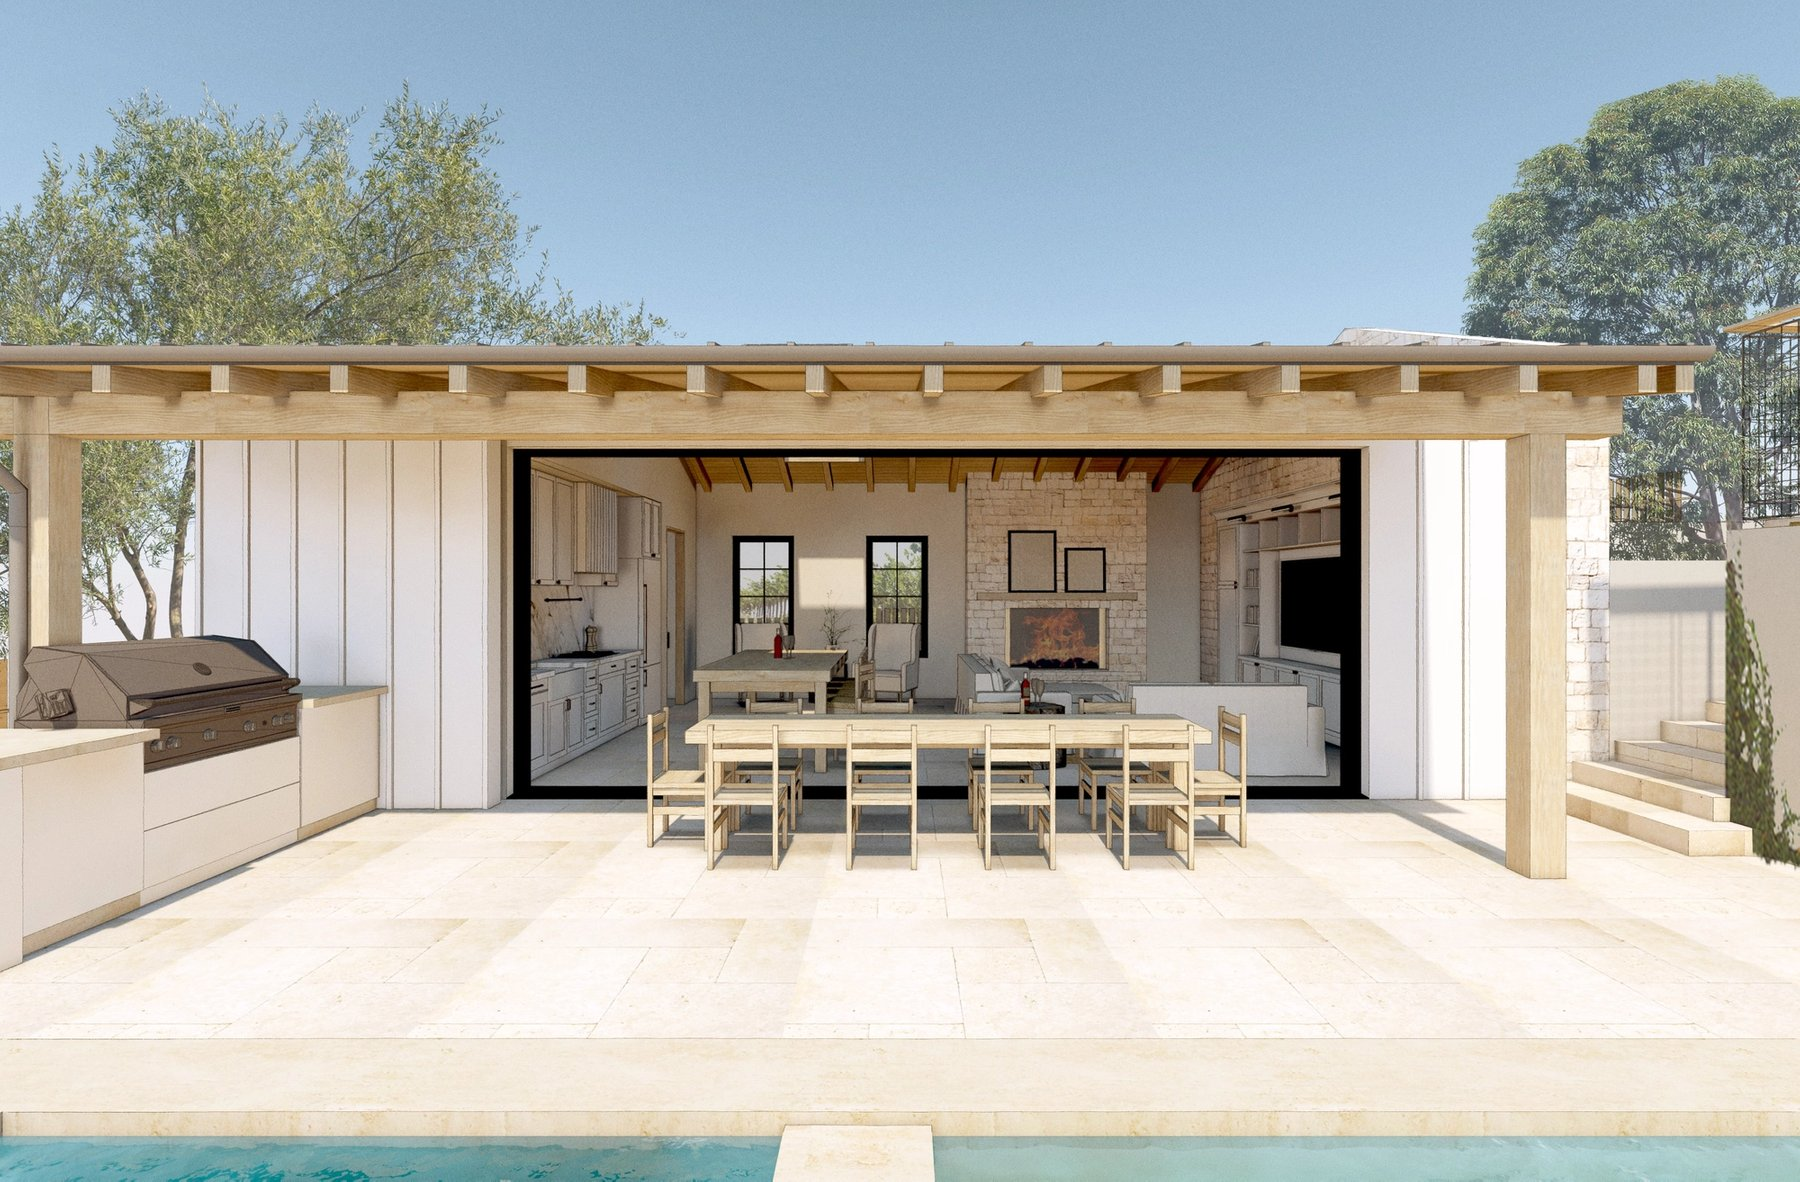 Pool House with doors open